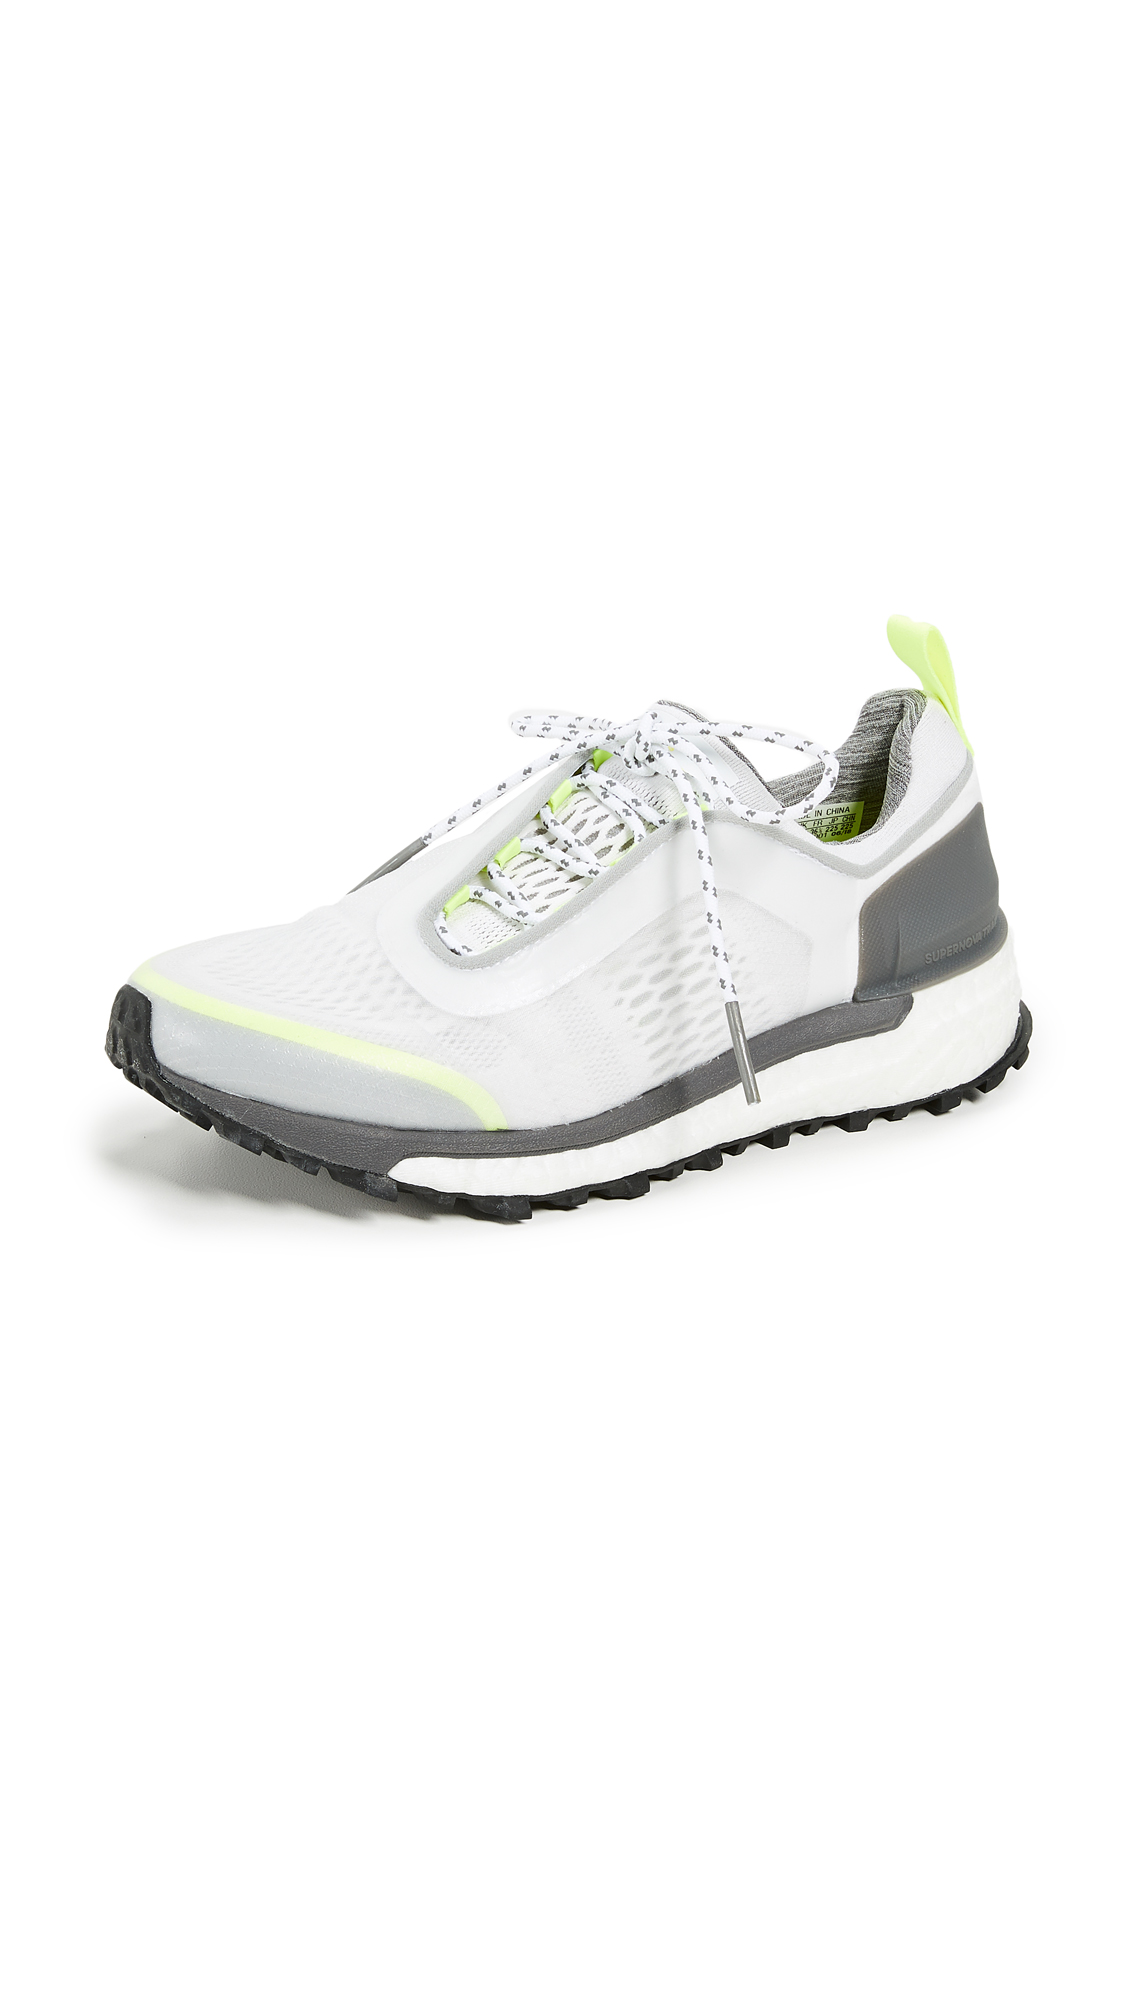 adidas by Stella McCartney Supernova Trail Sneakers - White/Solar Yellow/Core Black